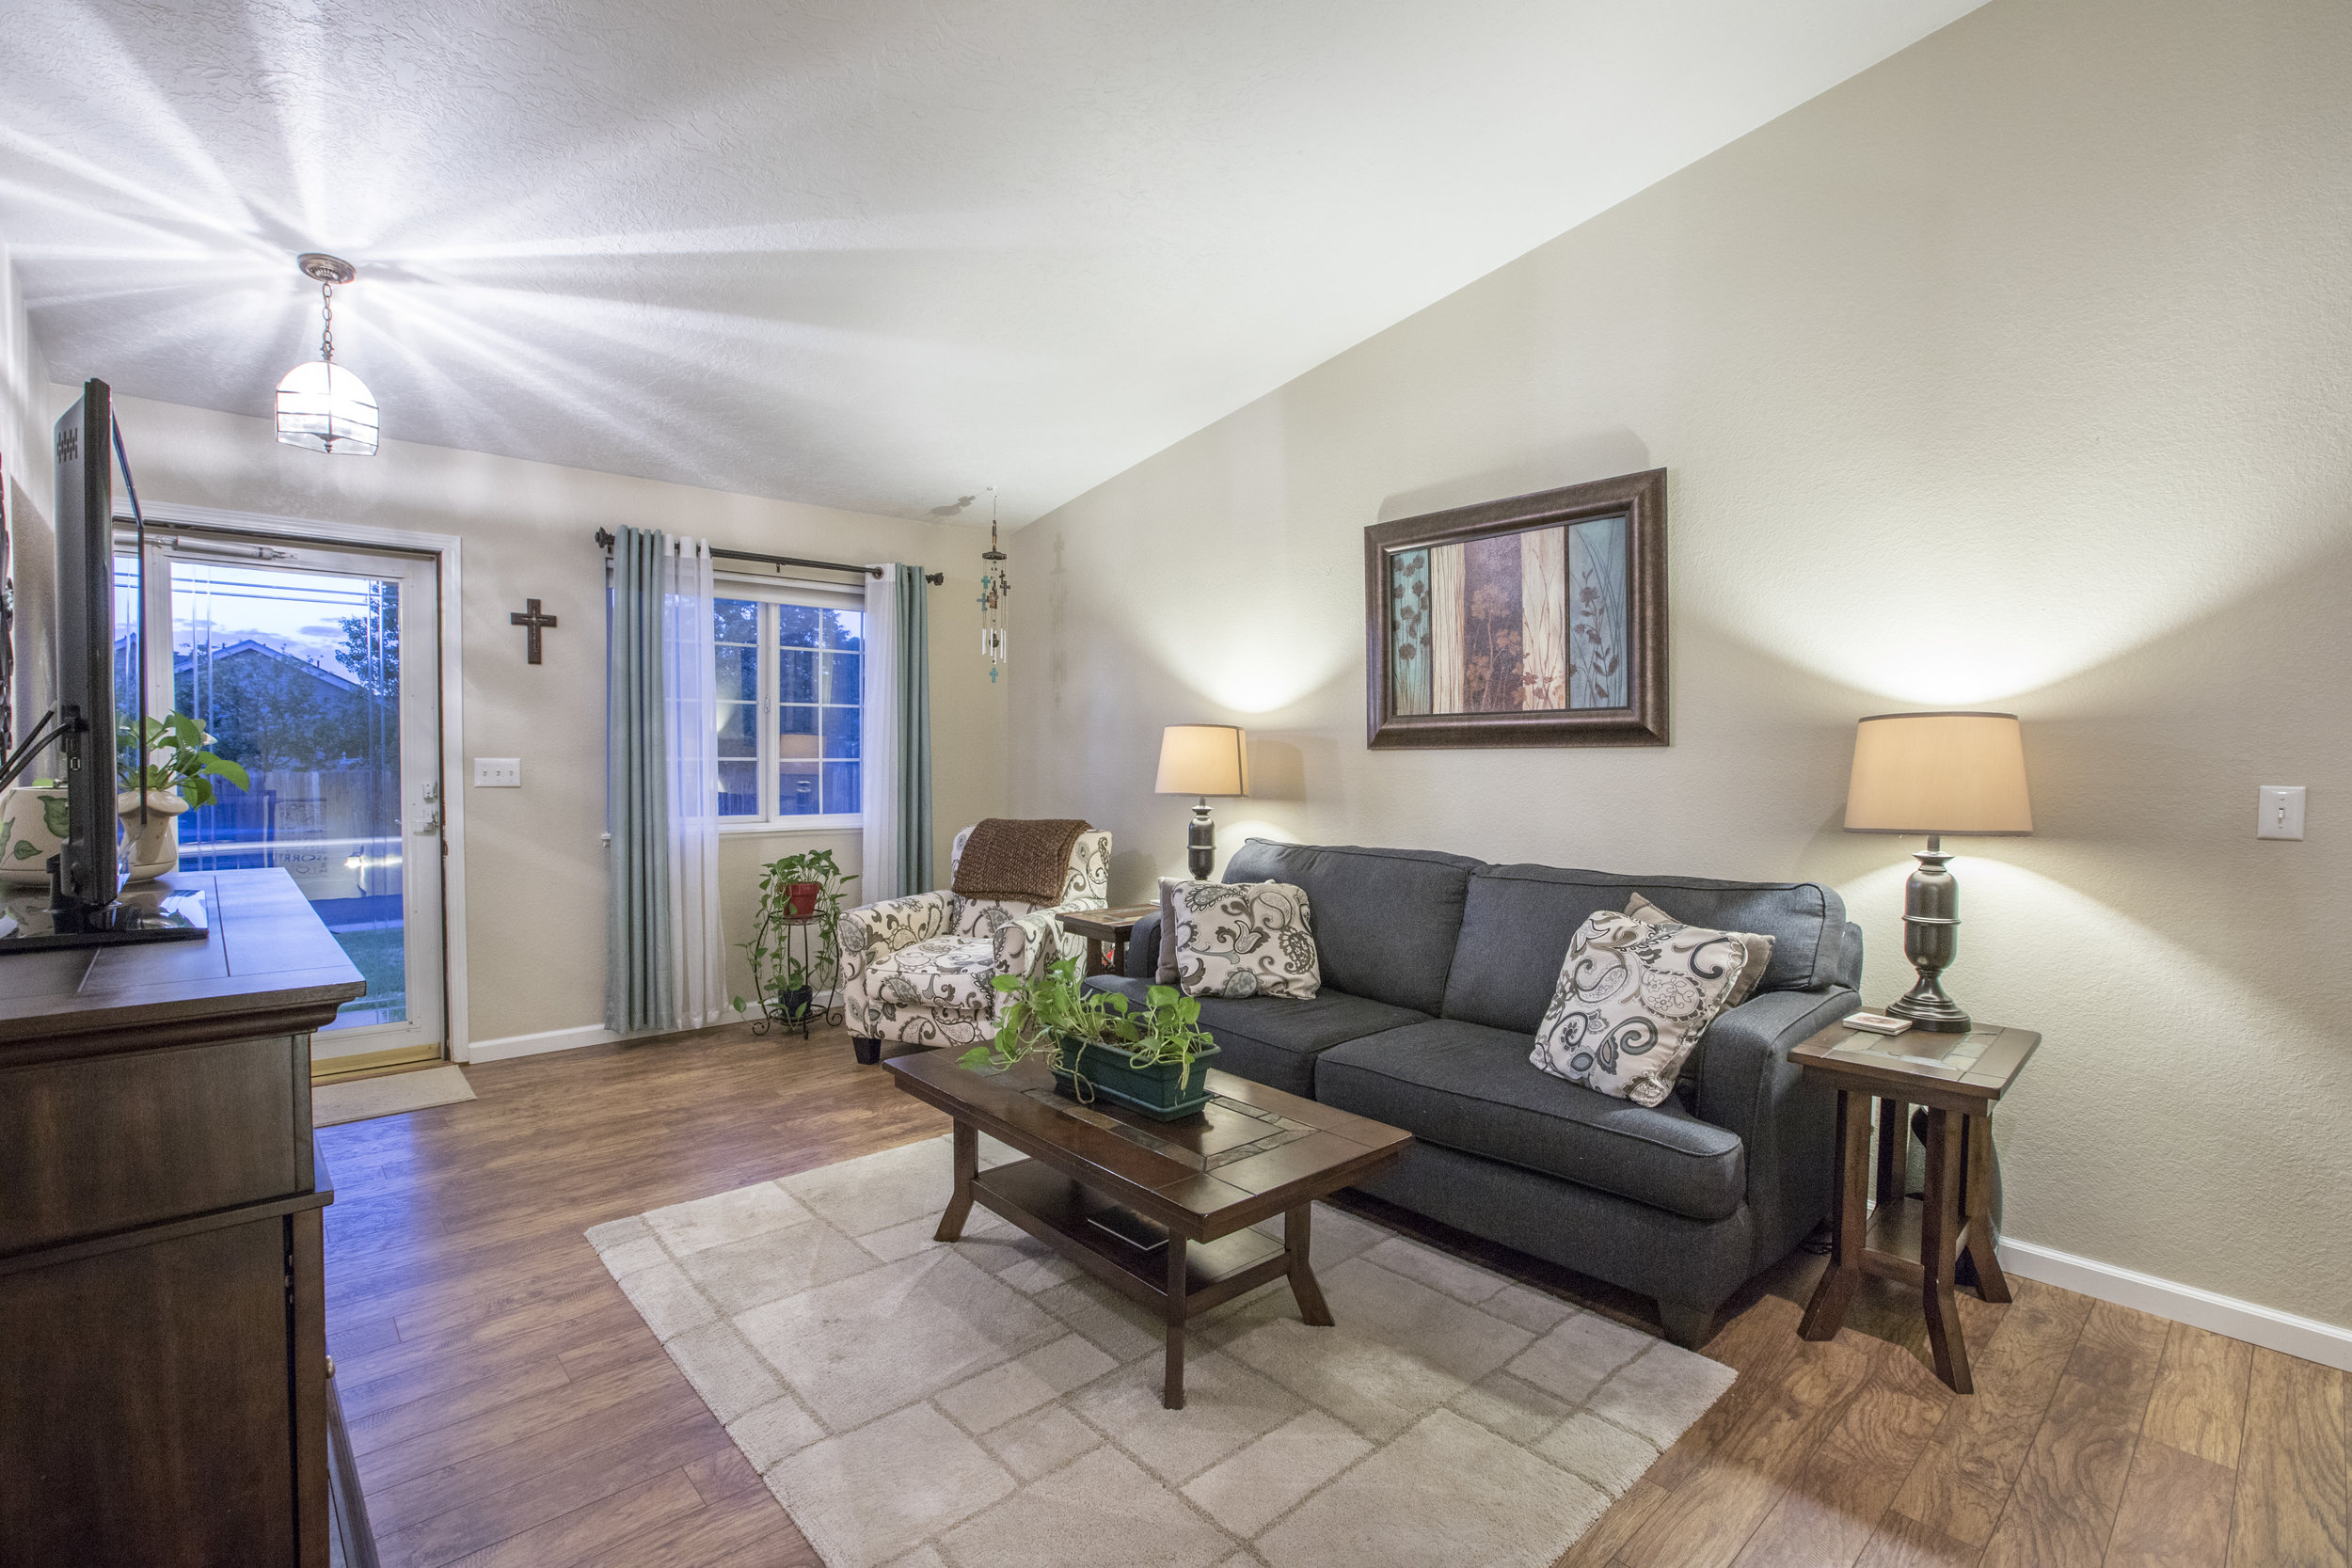 4946W2ndSt-LARGE-30.jpg